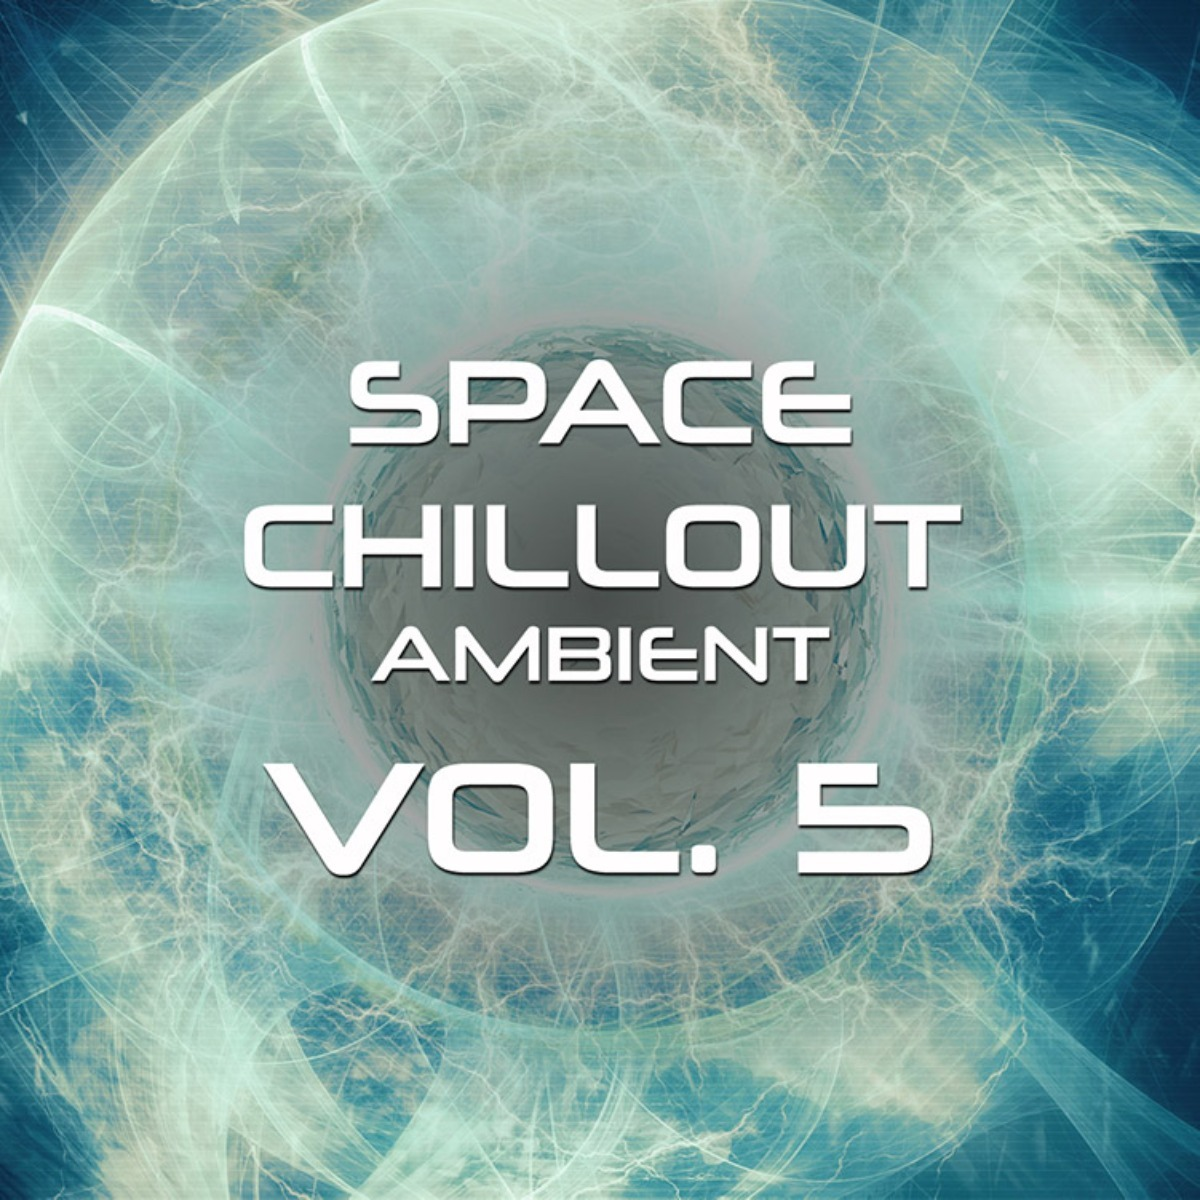 Space Chillout Vol 5